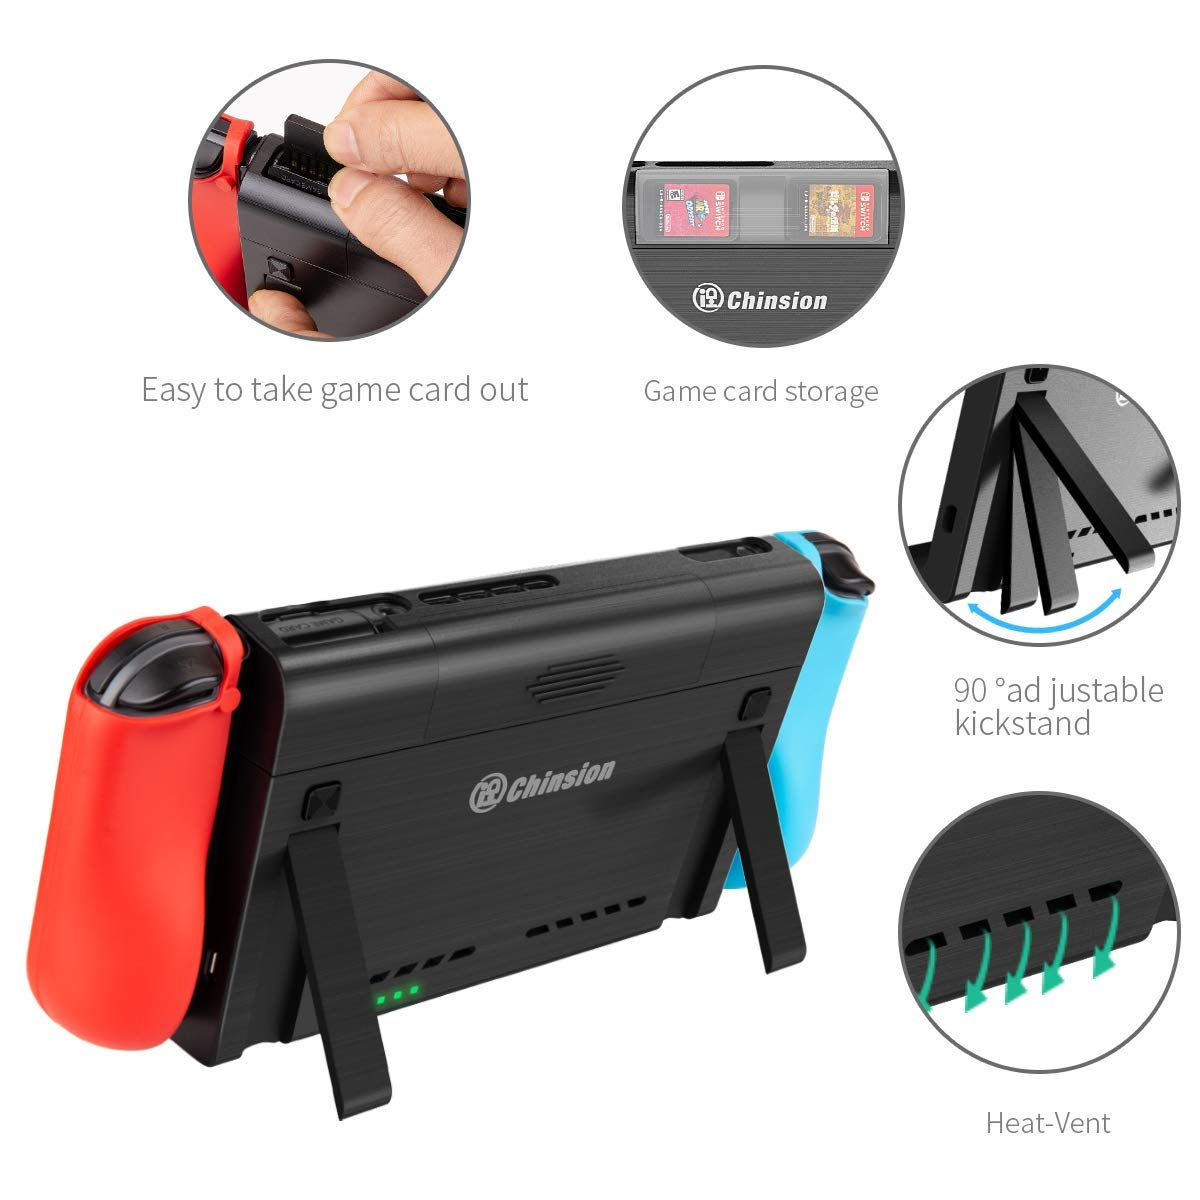 Battery Charger Case for Nintendo Switch, Portable Switch Battery Case with 10, 000 Mah Extended Travel Power Bank, Kickstand and USB-C Charging Cable by NSBCC (Image #3)